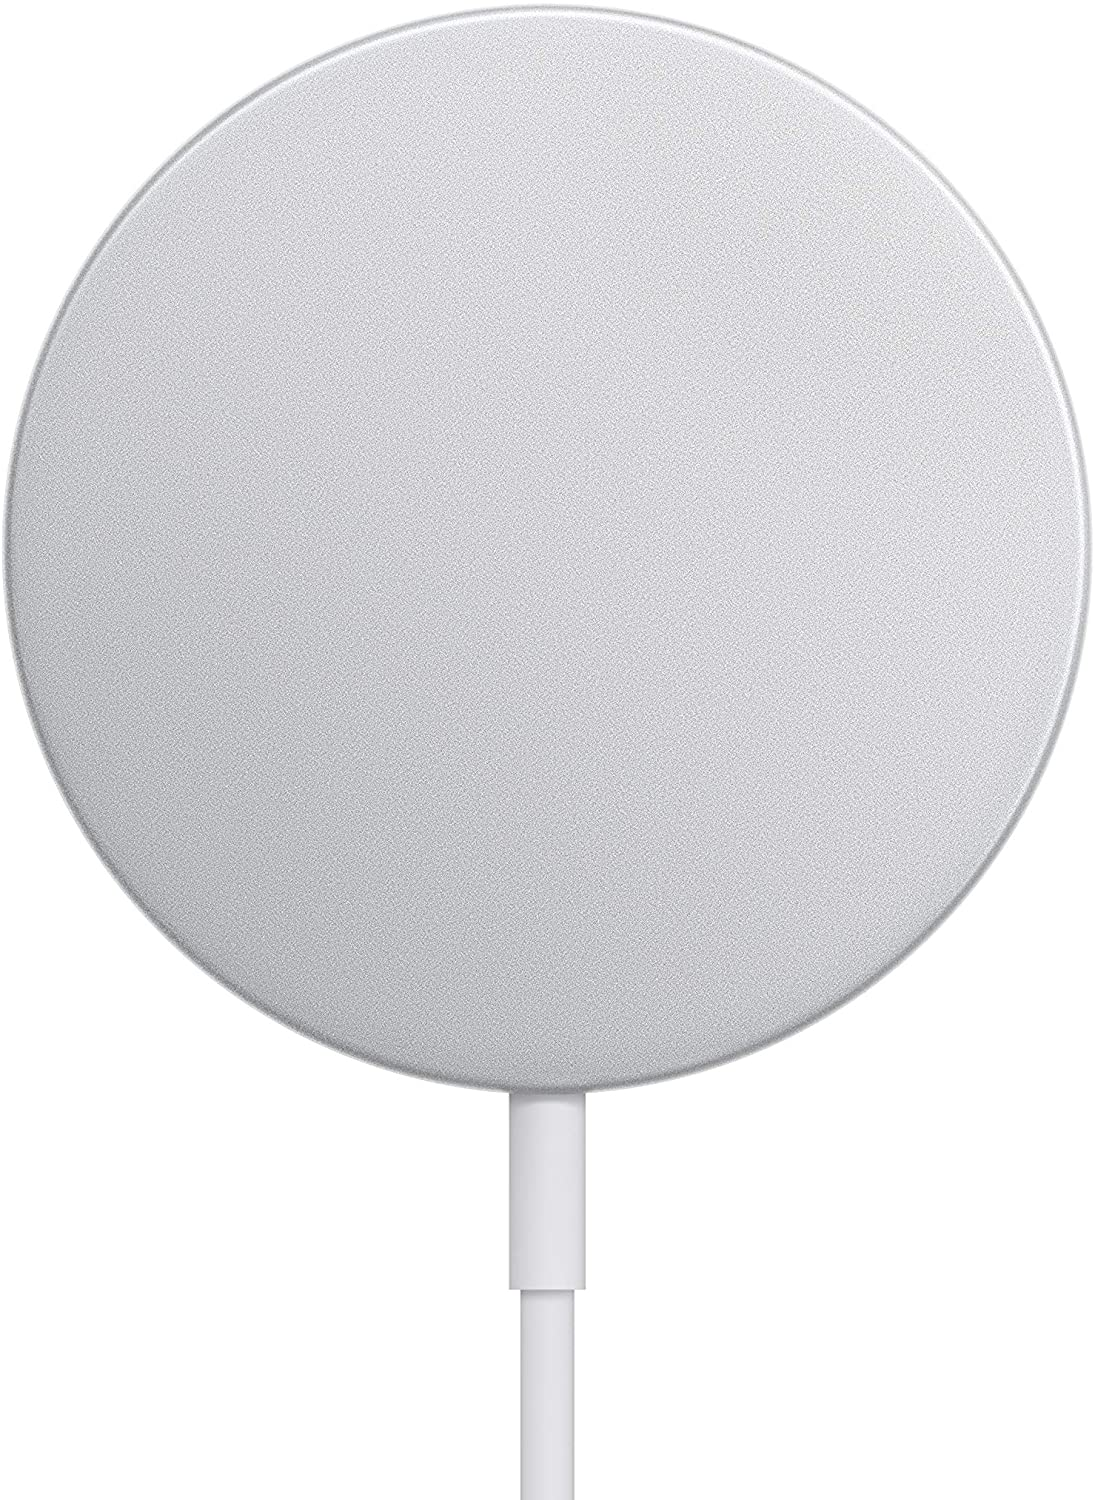 Apple MagSafe Charger $35.99